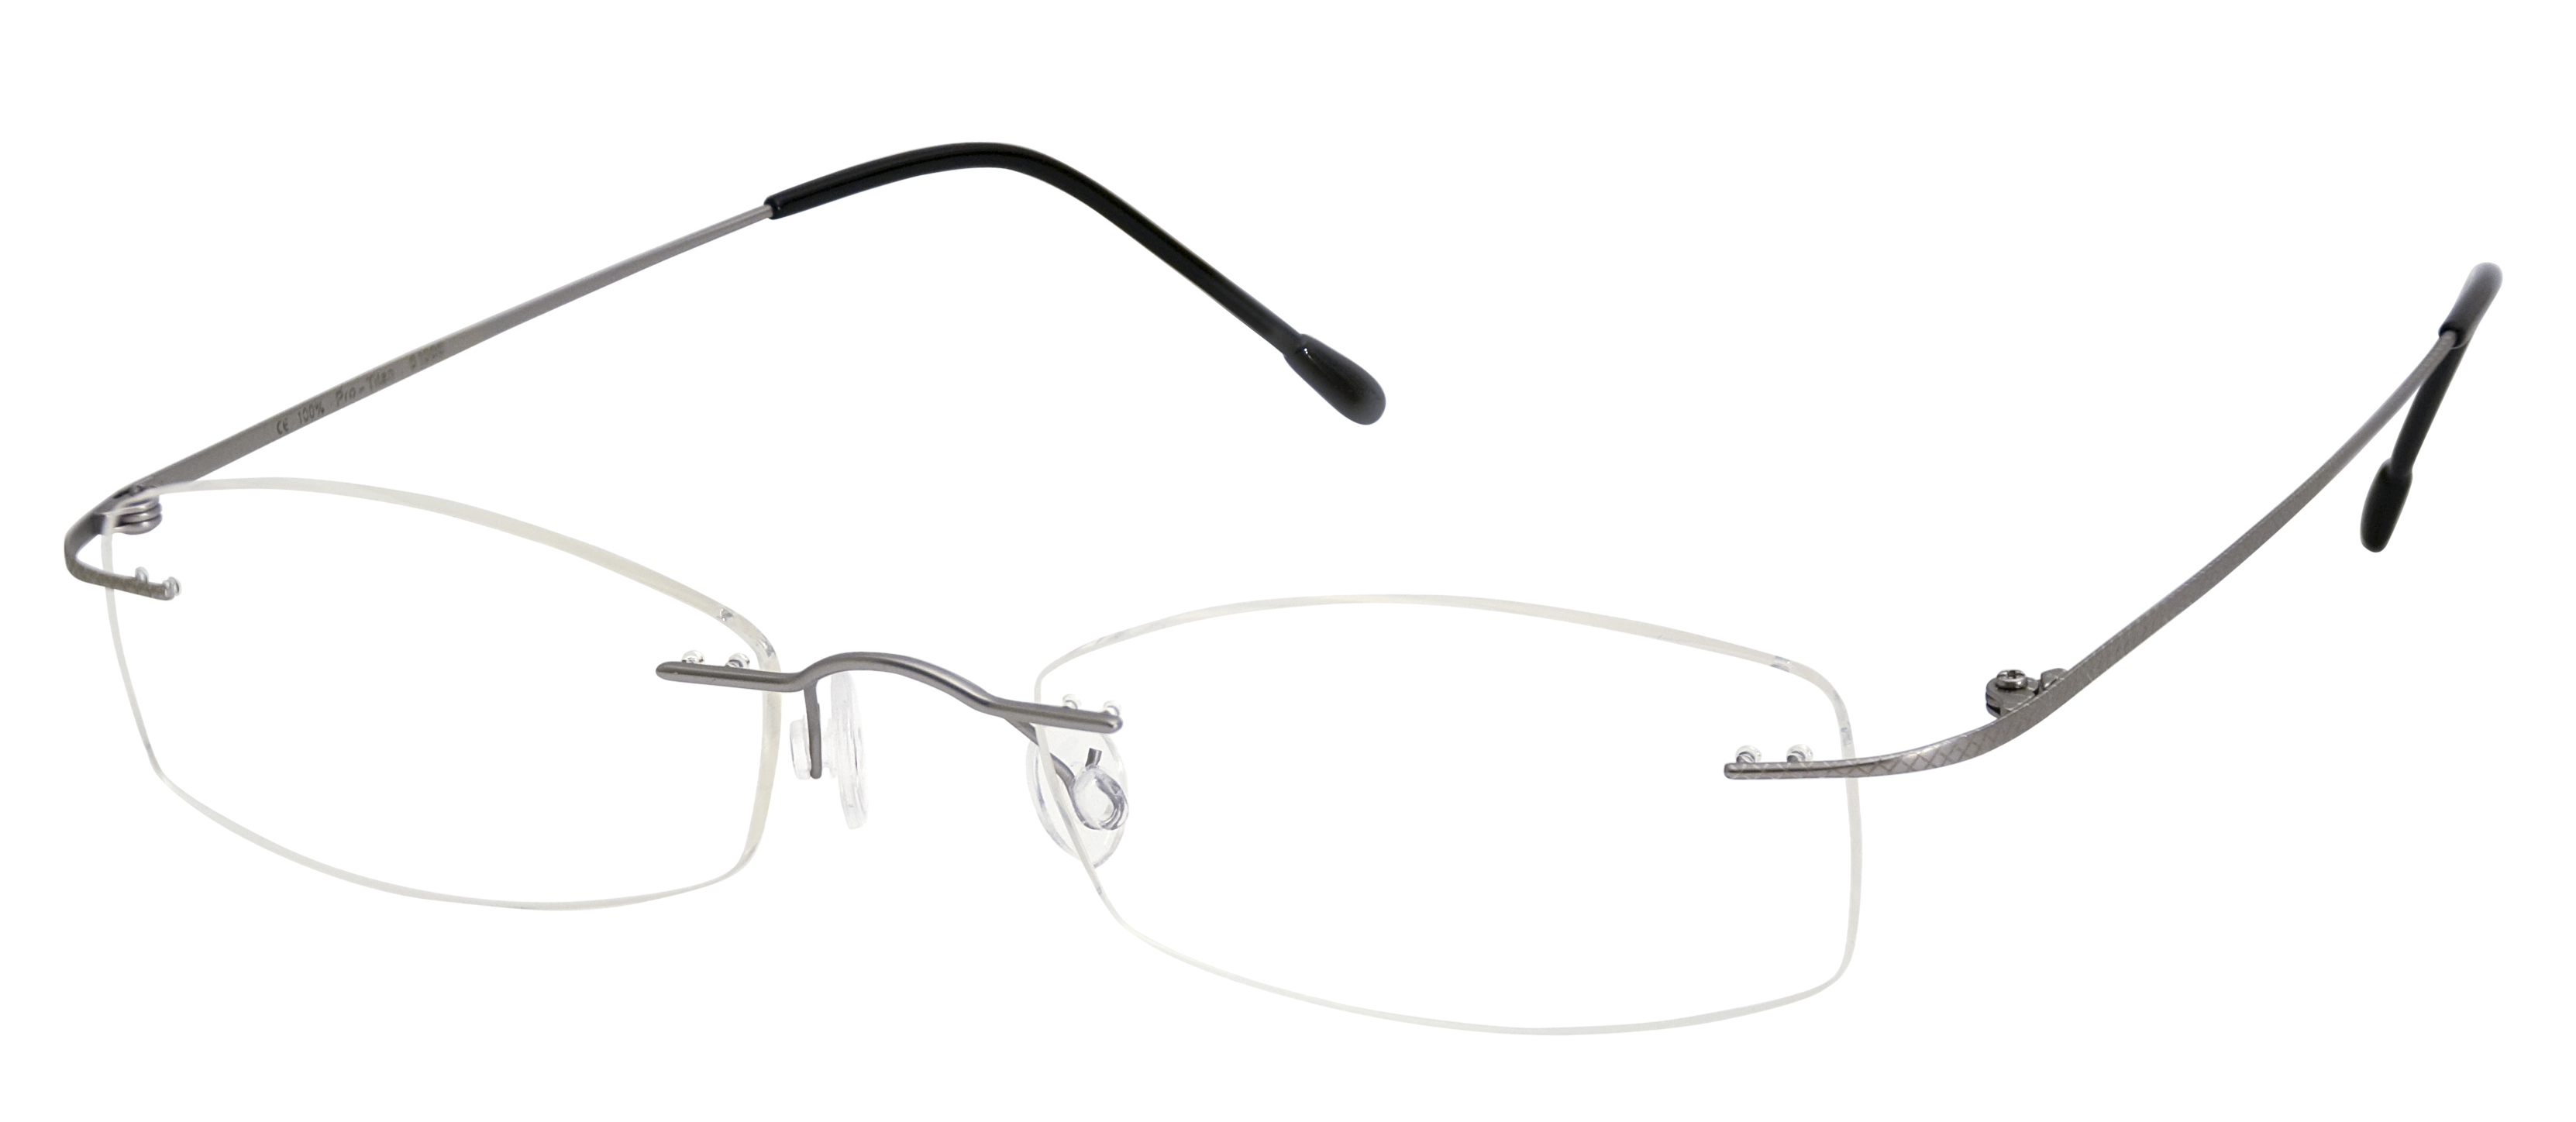 ac6d890577 Rimless eyeglasses - Wikipedia